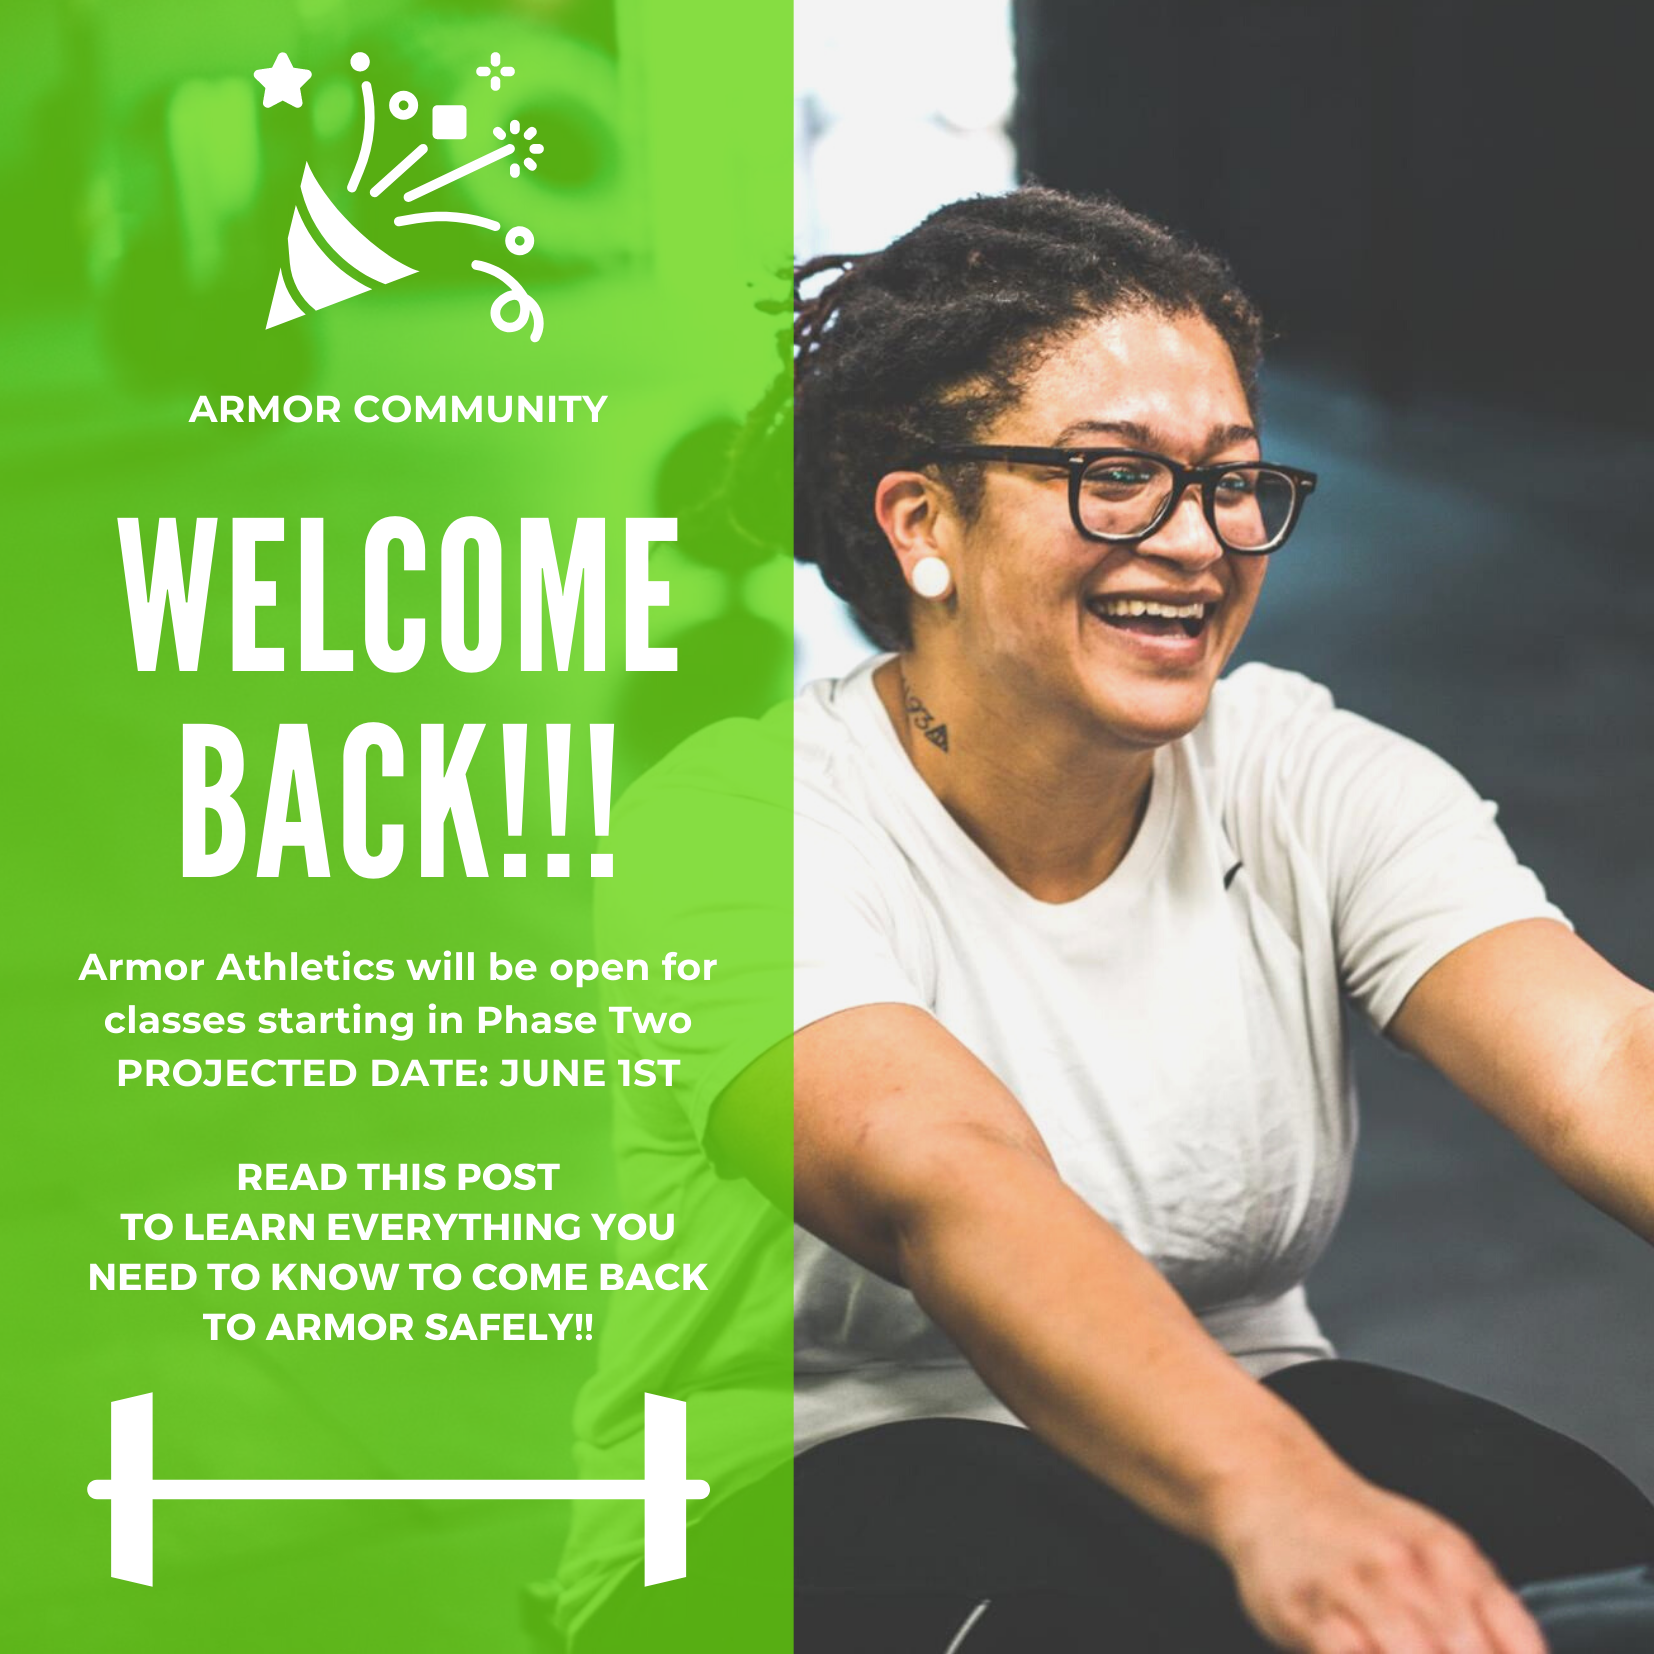 welcome back, covid, closure, gym, tacoma, armor athletics, rowing